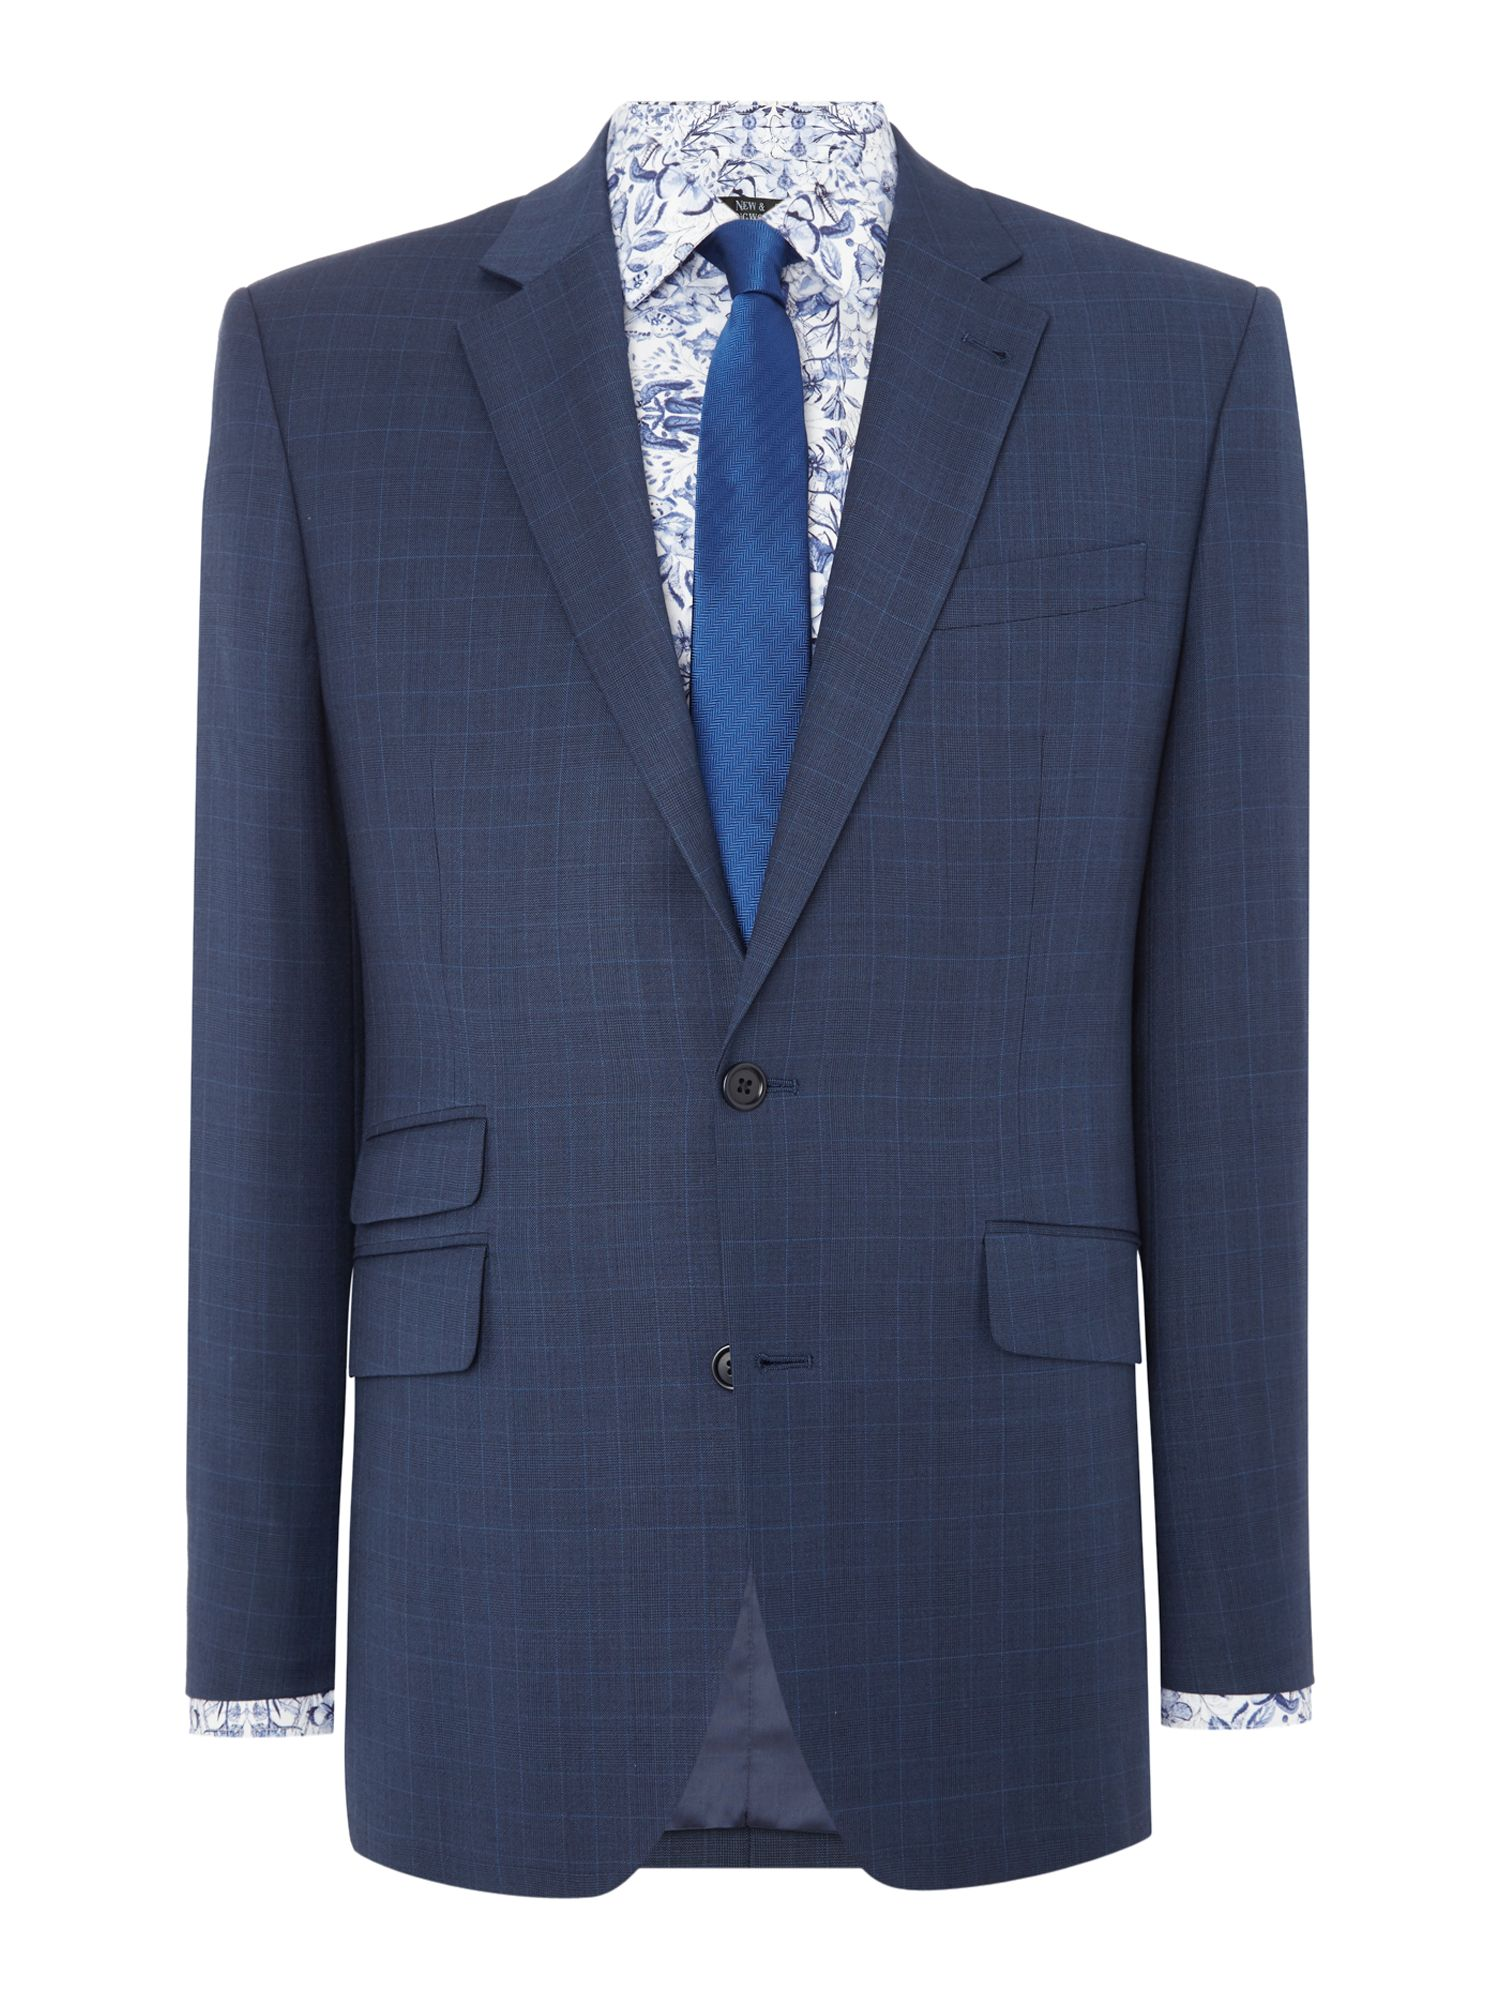 Men's New & Lingwood Eastleigh Check Suit Jacket, Navy